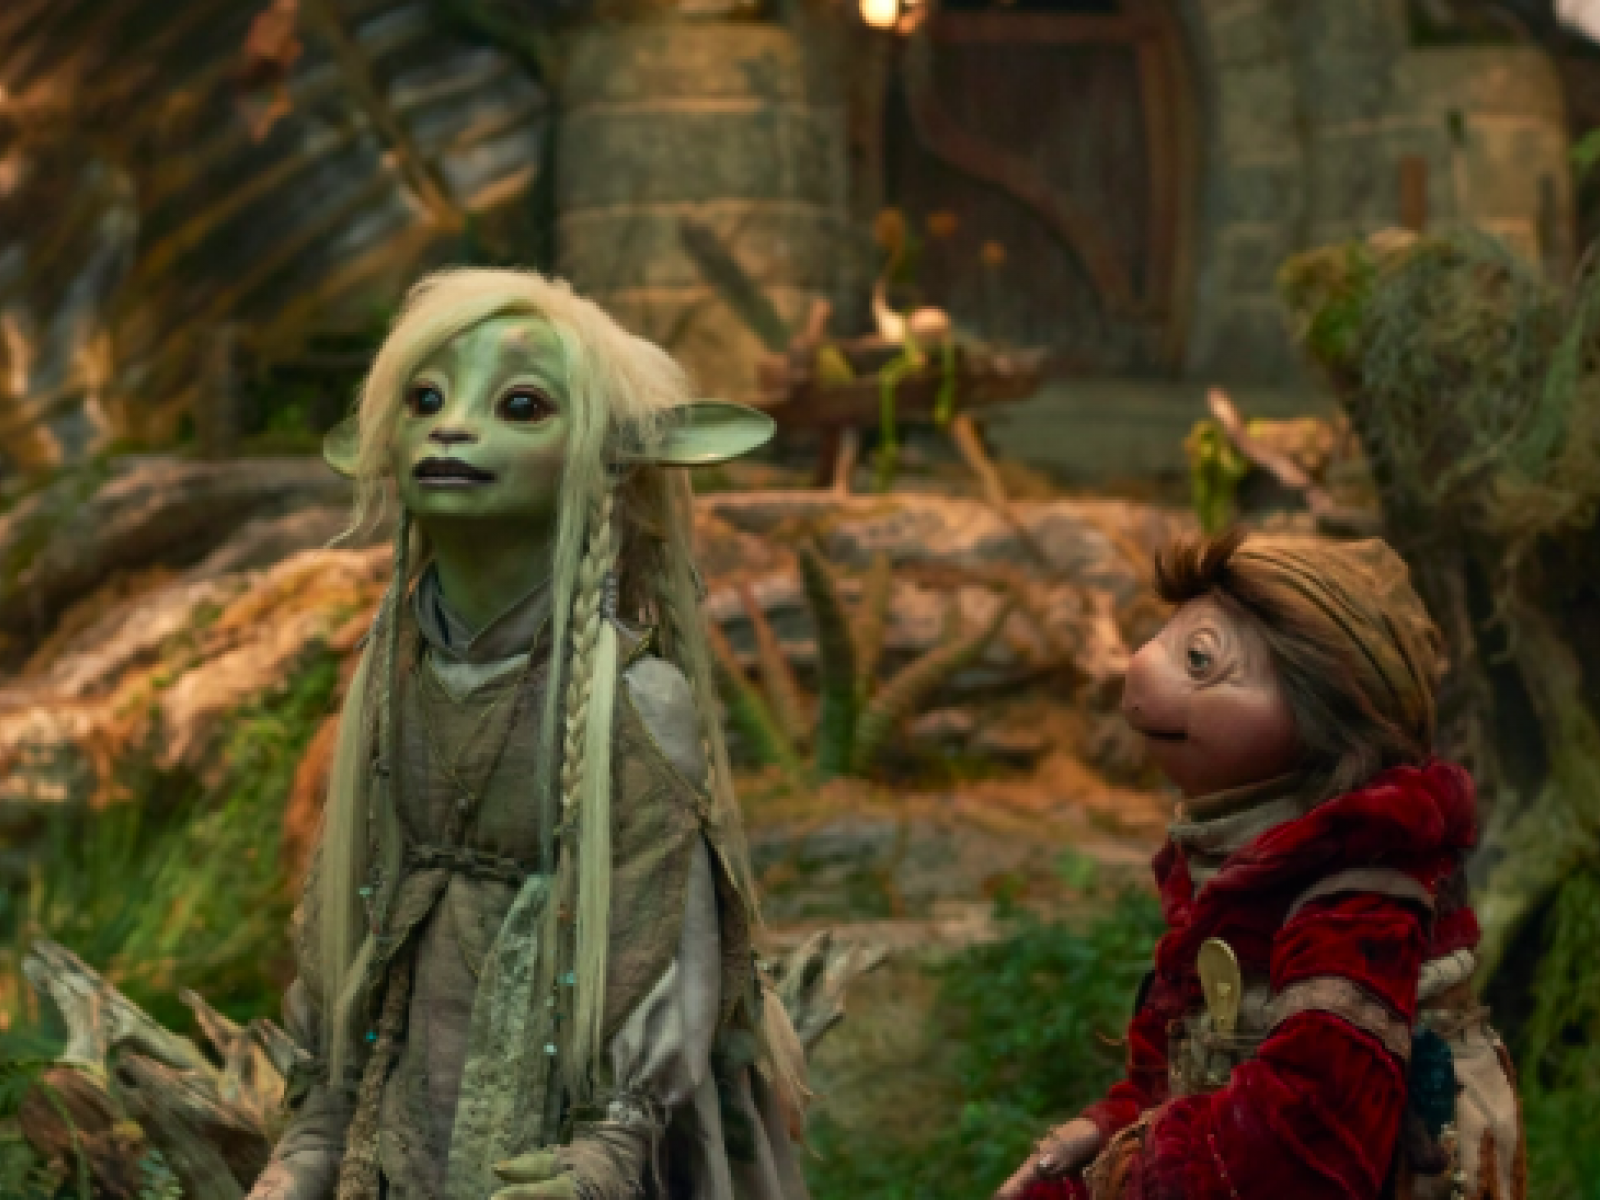 Main image for event titled THE DARK CRYSTAL at the Plant Drive-In